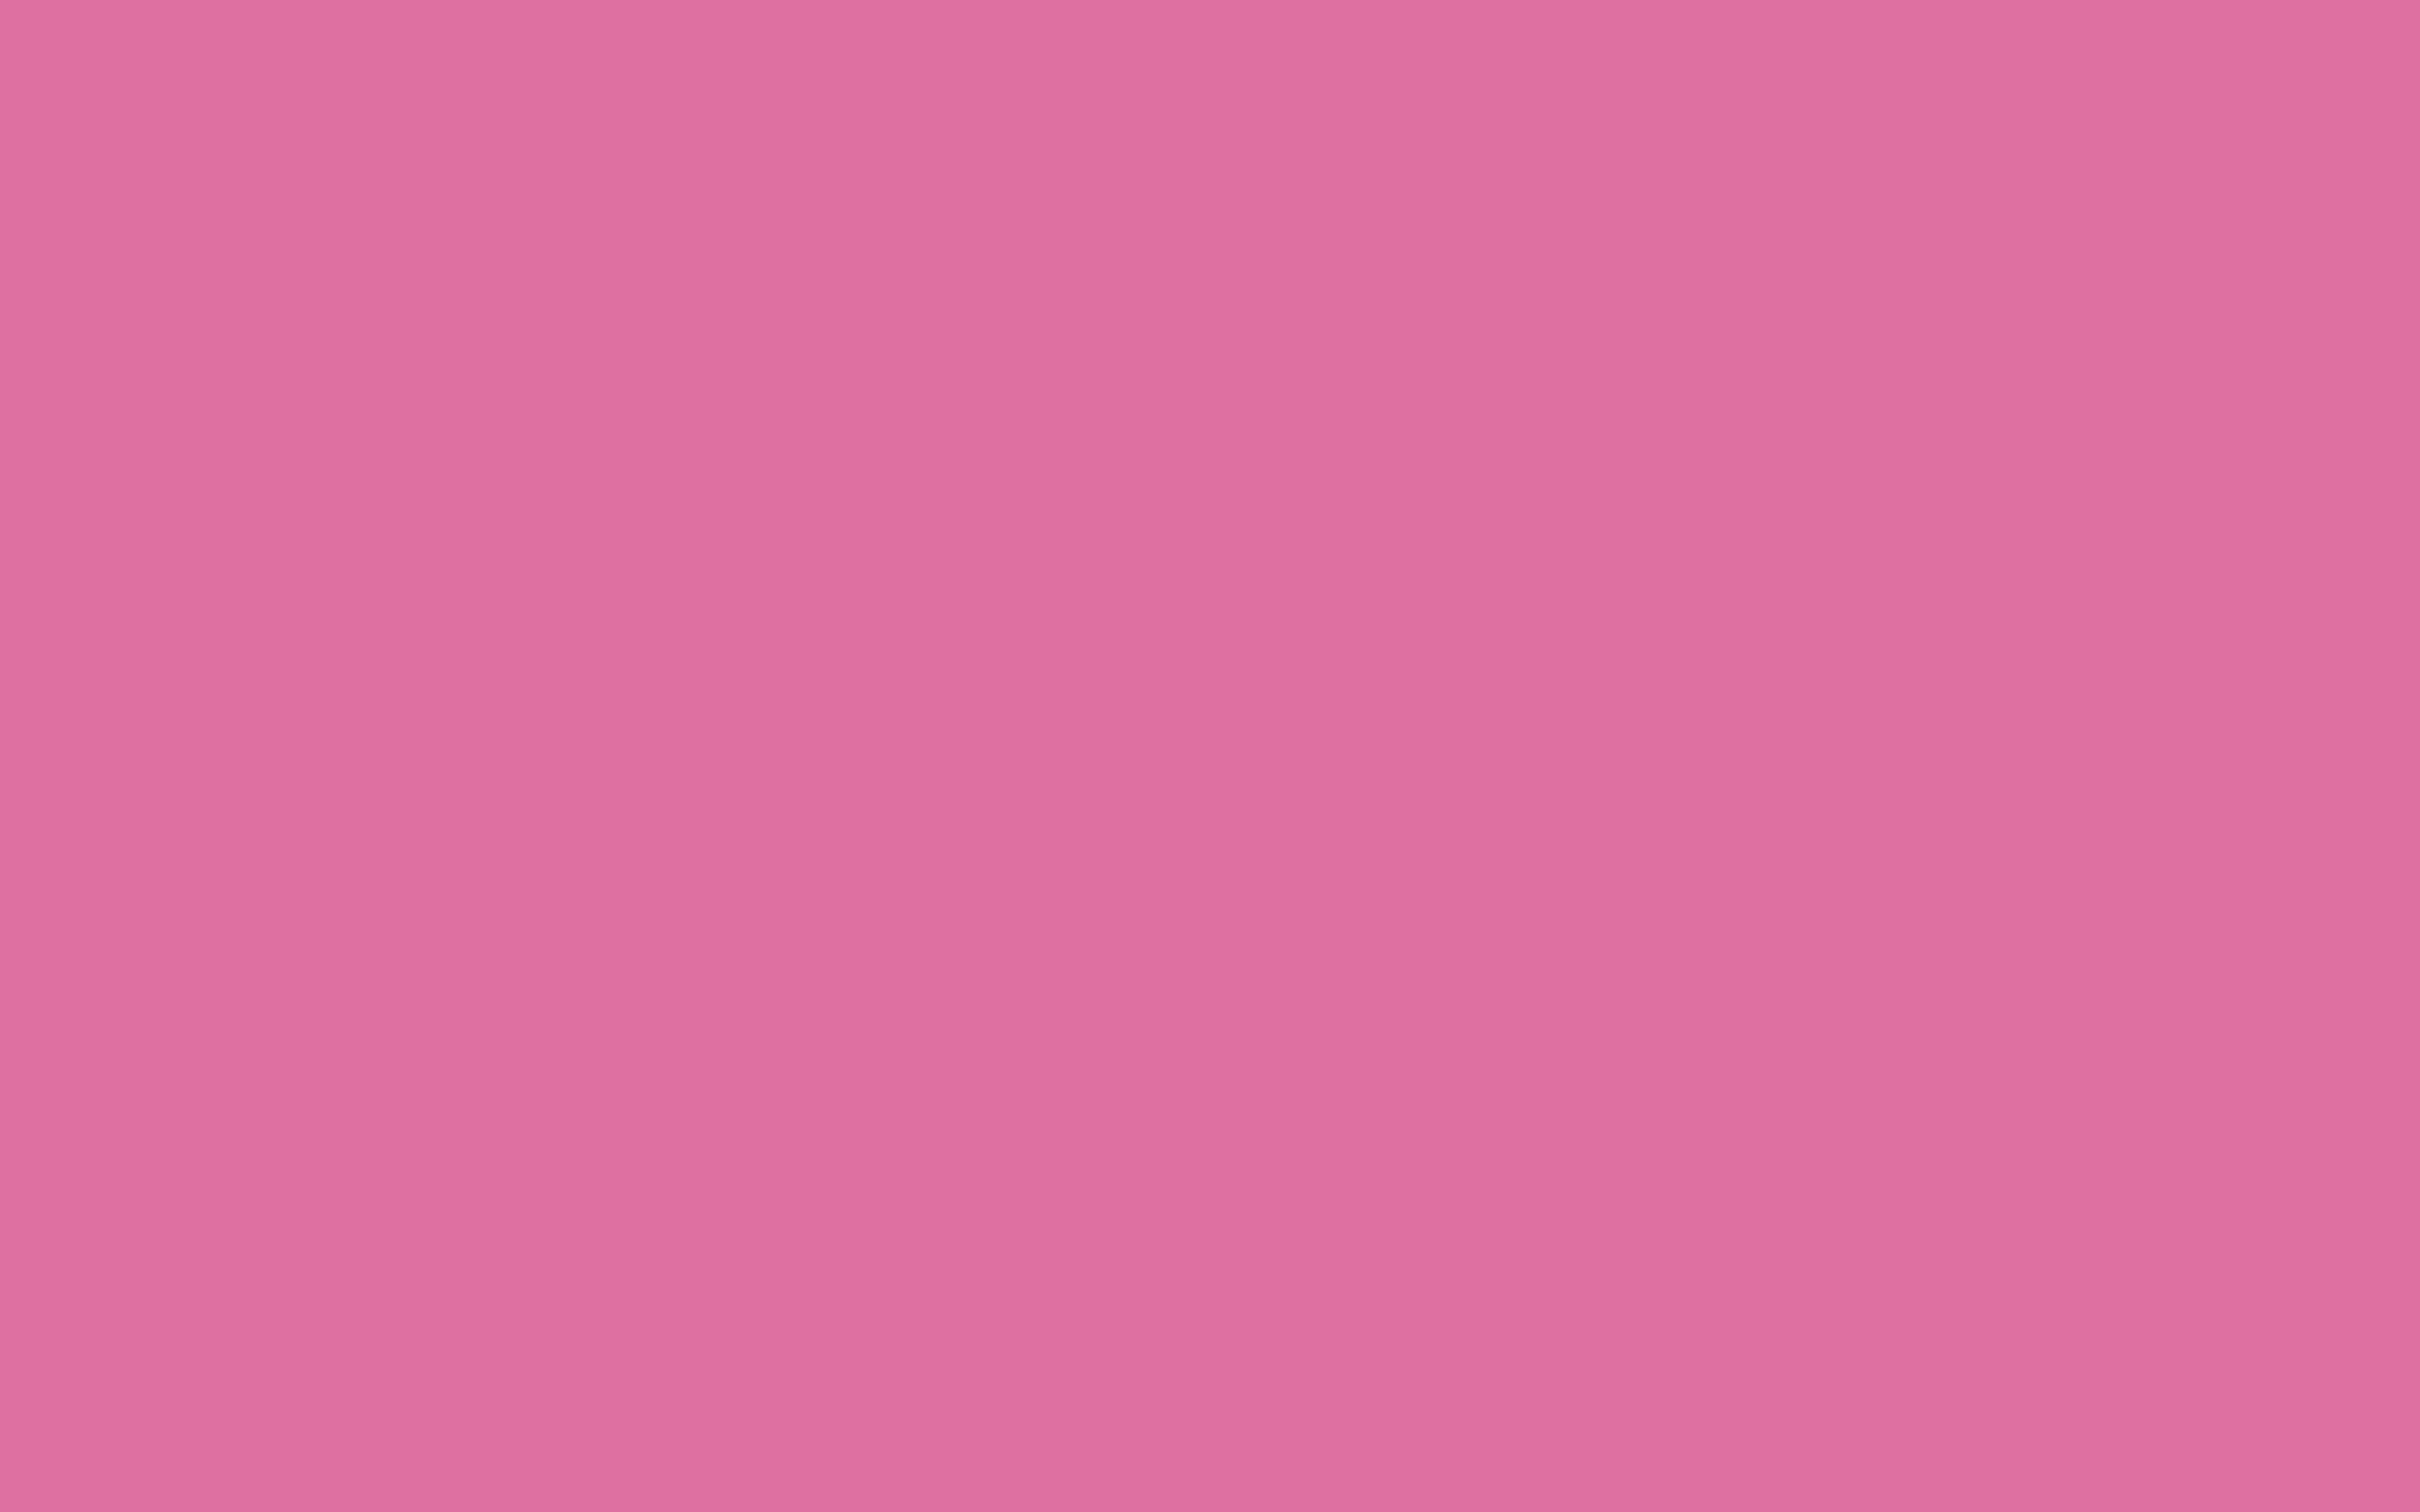 2560x1600 Thulian Pink Solid Color Background